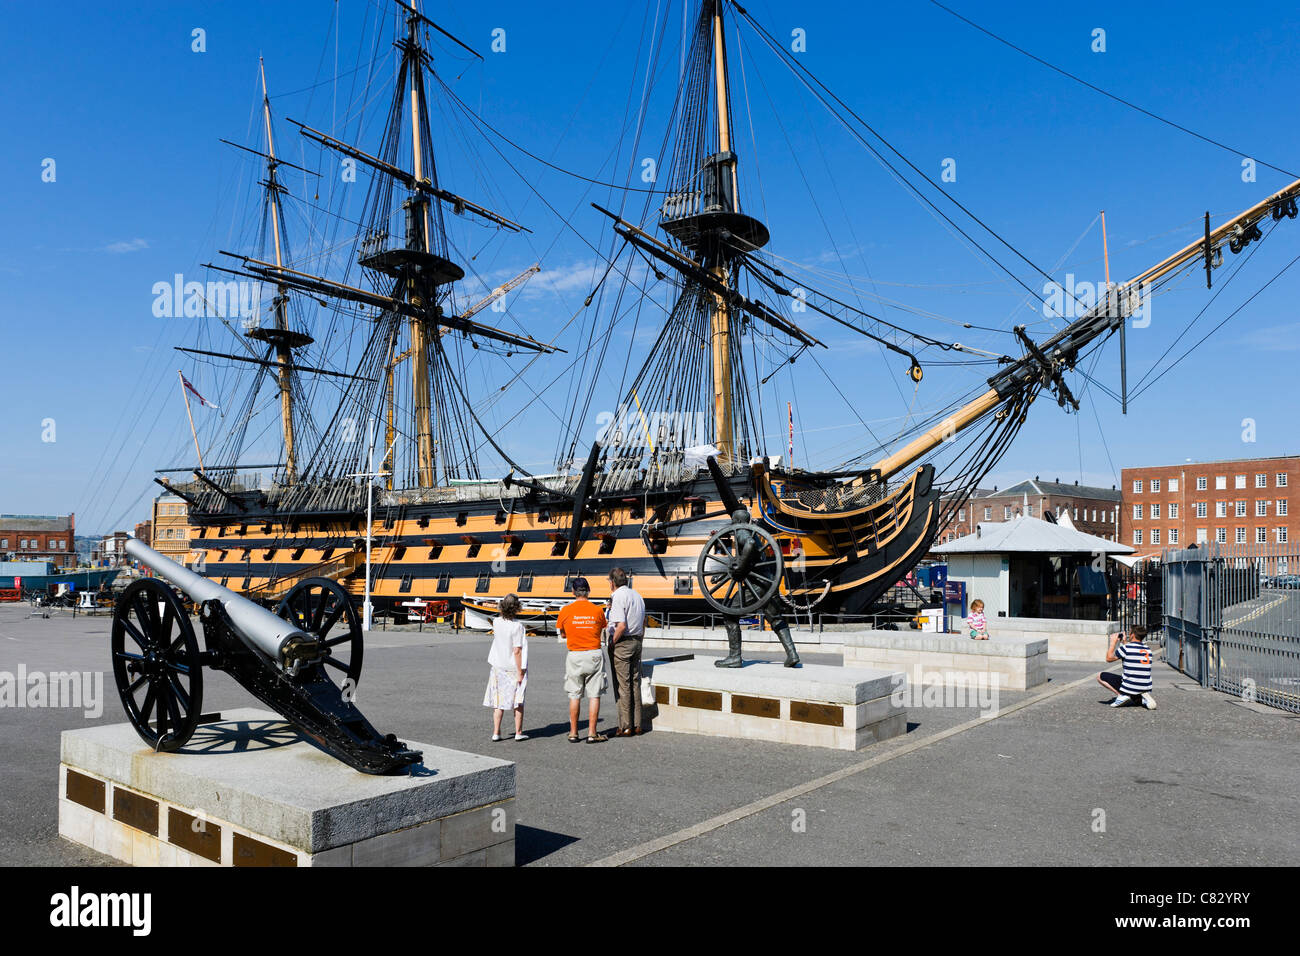 Tourists in front of Lord Nelson's flagship HMS Victory in Portsmouth Historic Dockyard, Portsmouth, Hampshire, - Stock Image